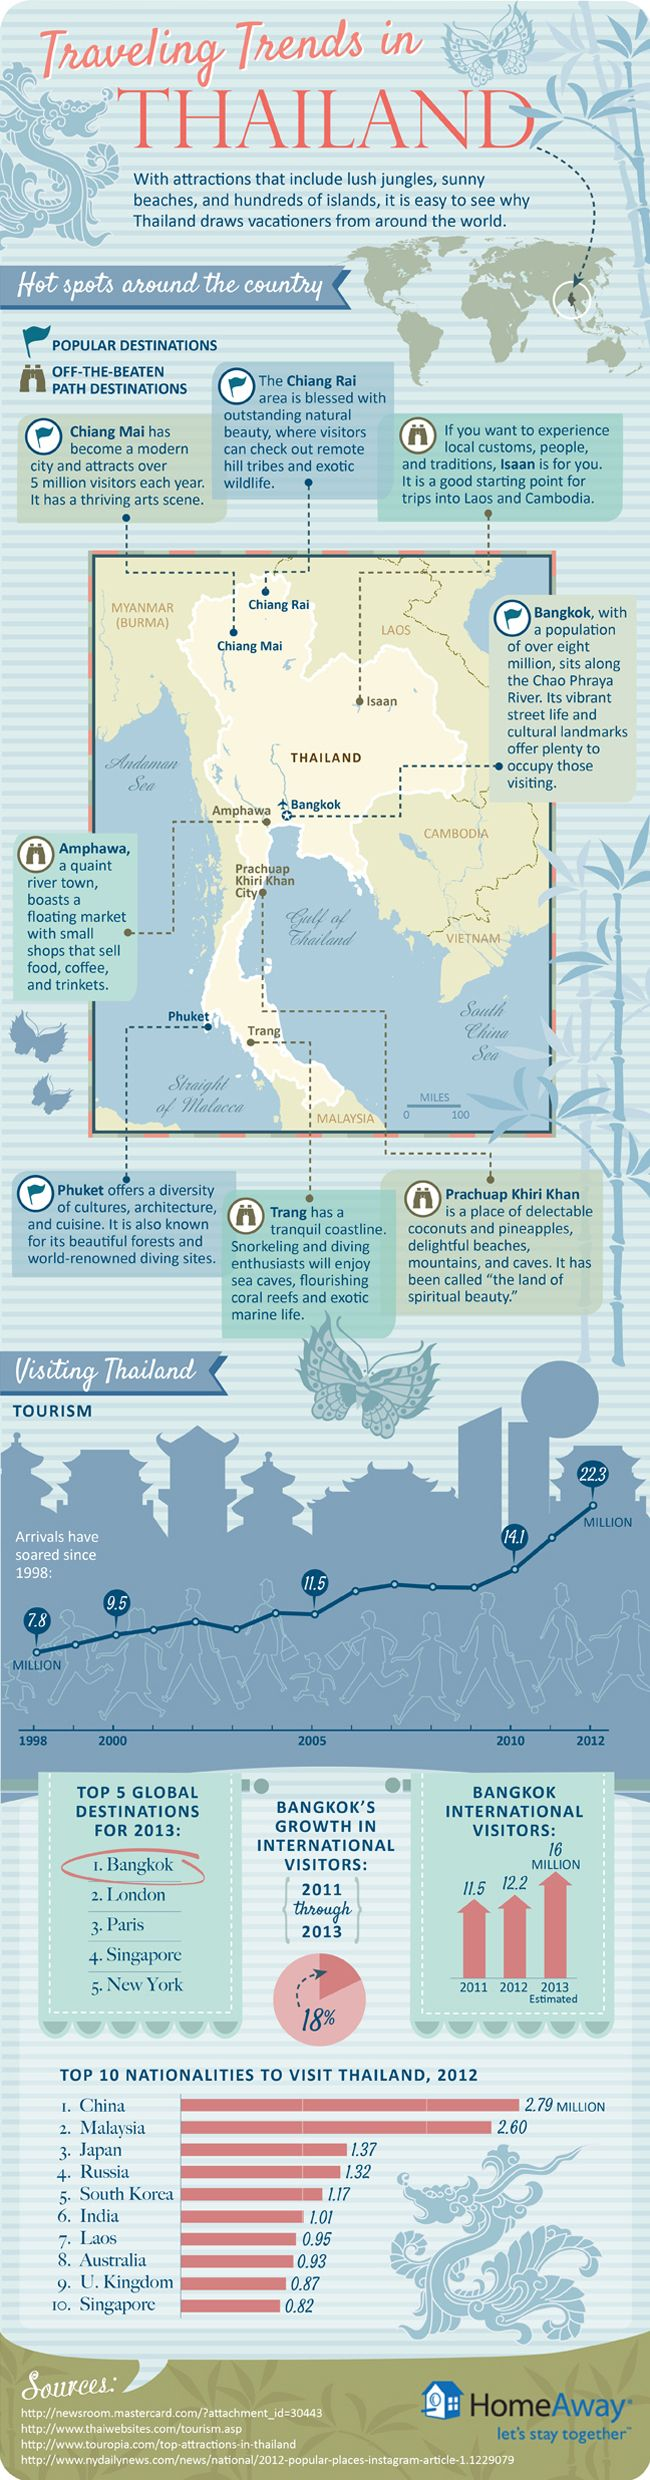 All you need to know about travelling in Thailand. #Thailand. http://www.homeaway.com.au/info/holiday-ideas/holiday-destinations/thailand-holidays/traveling-to-thailand-infographic